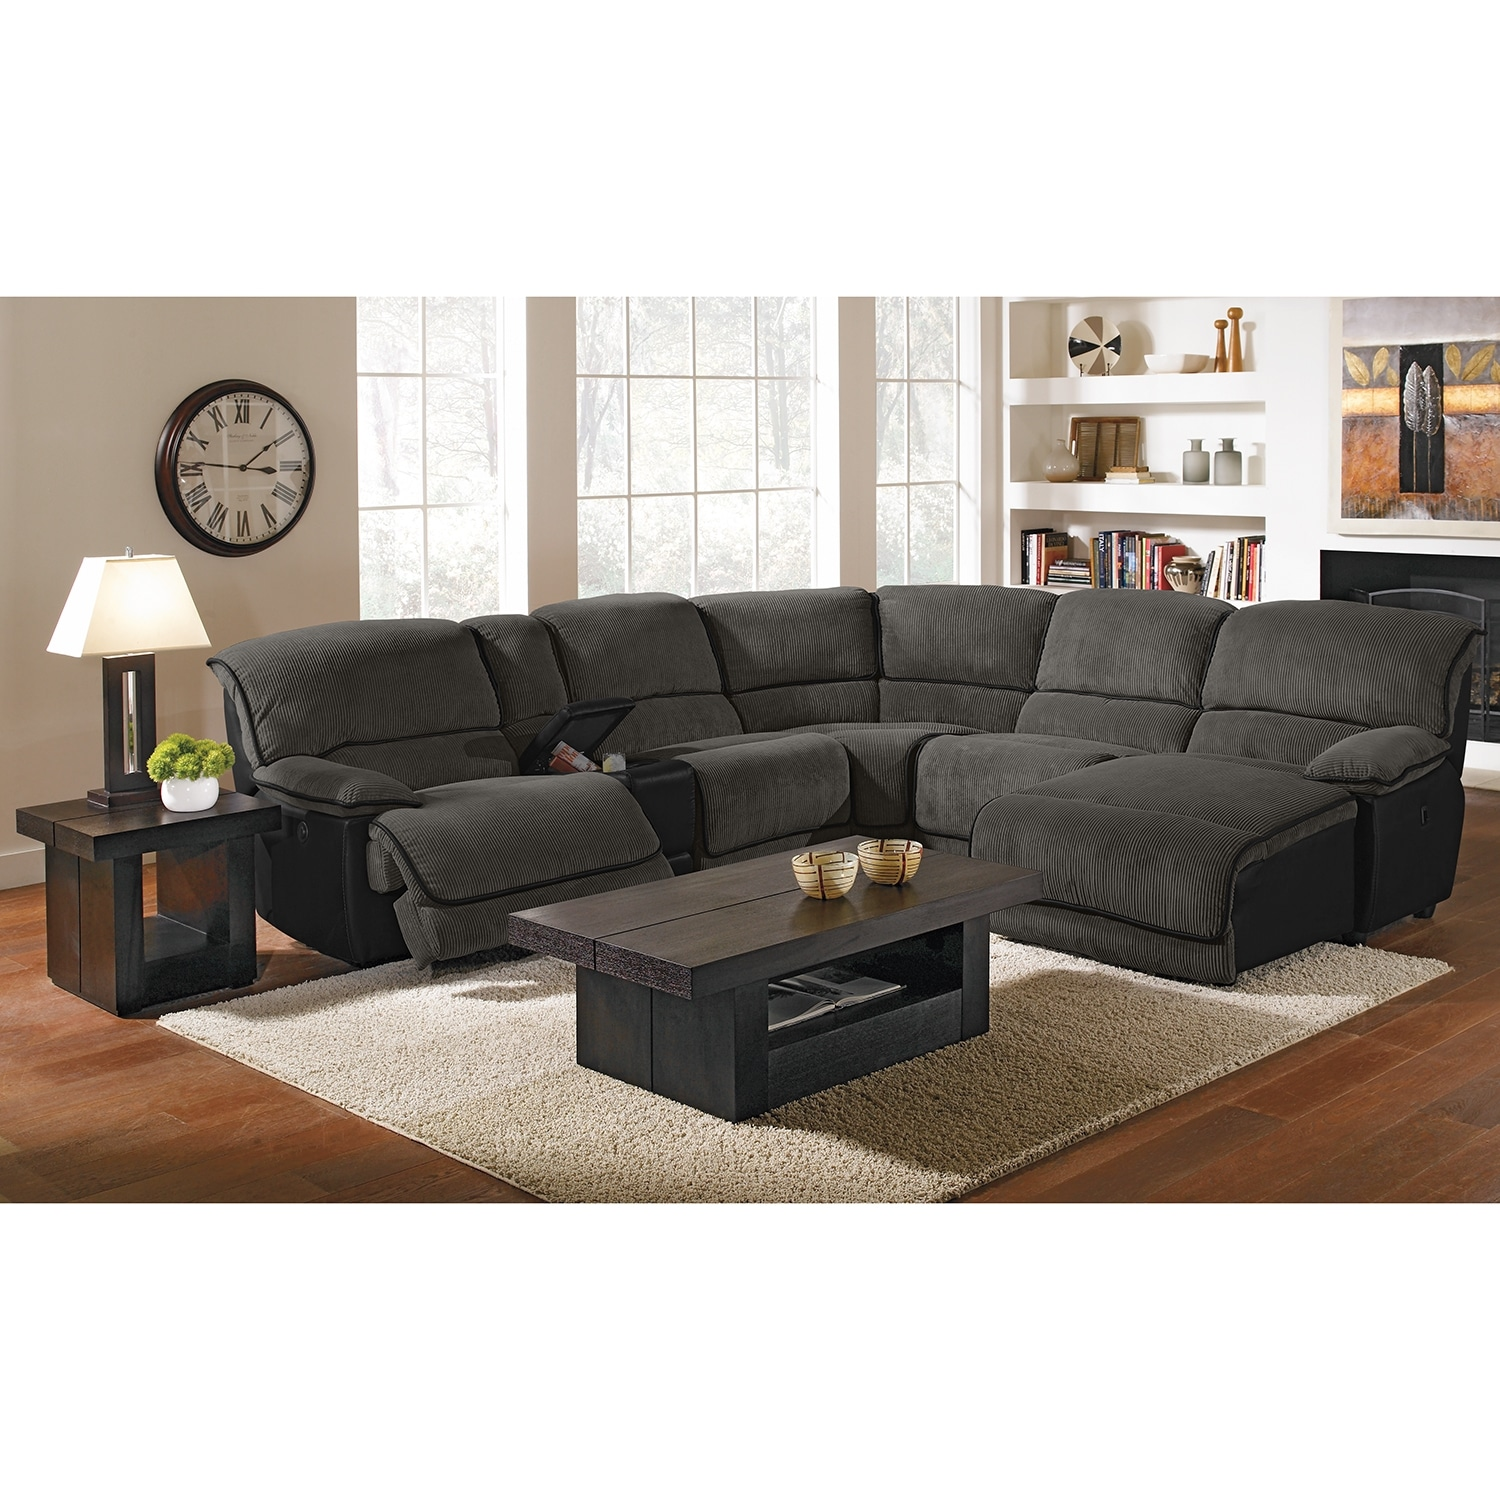 Del mar ii upholstery 6 pc power reclining sectional for 6 pc sectional living room